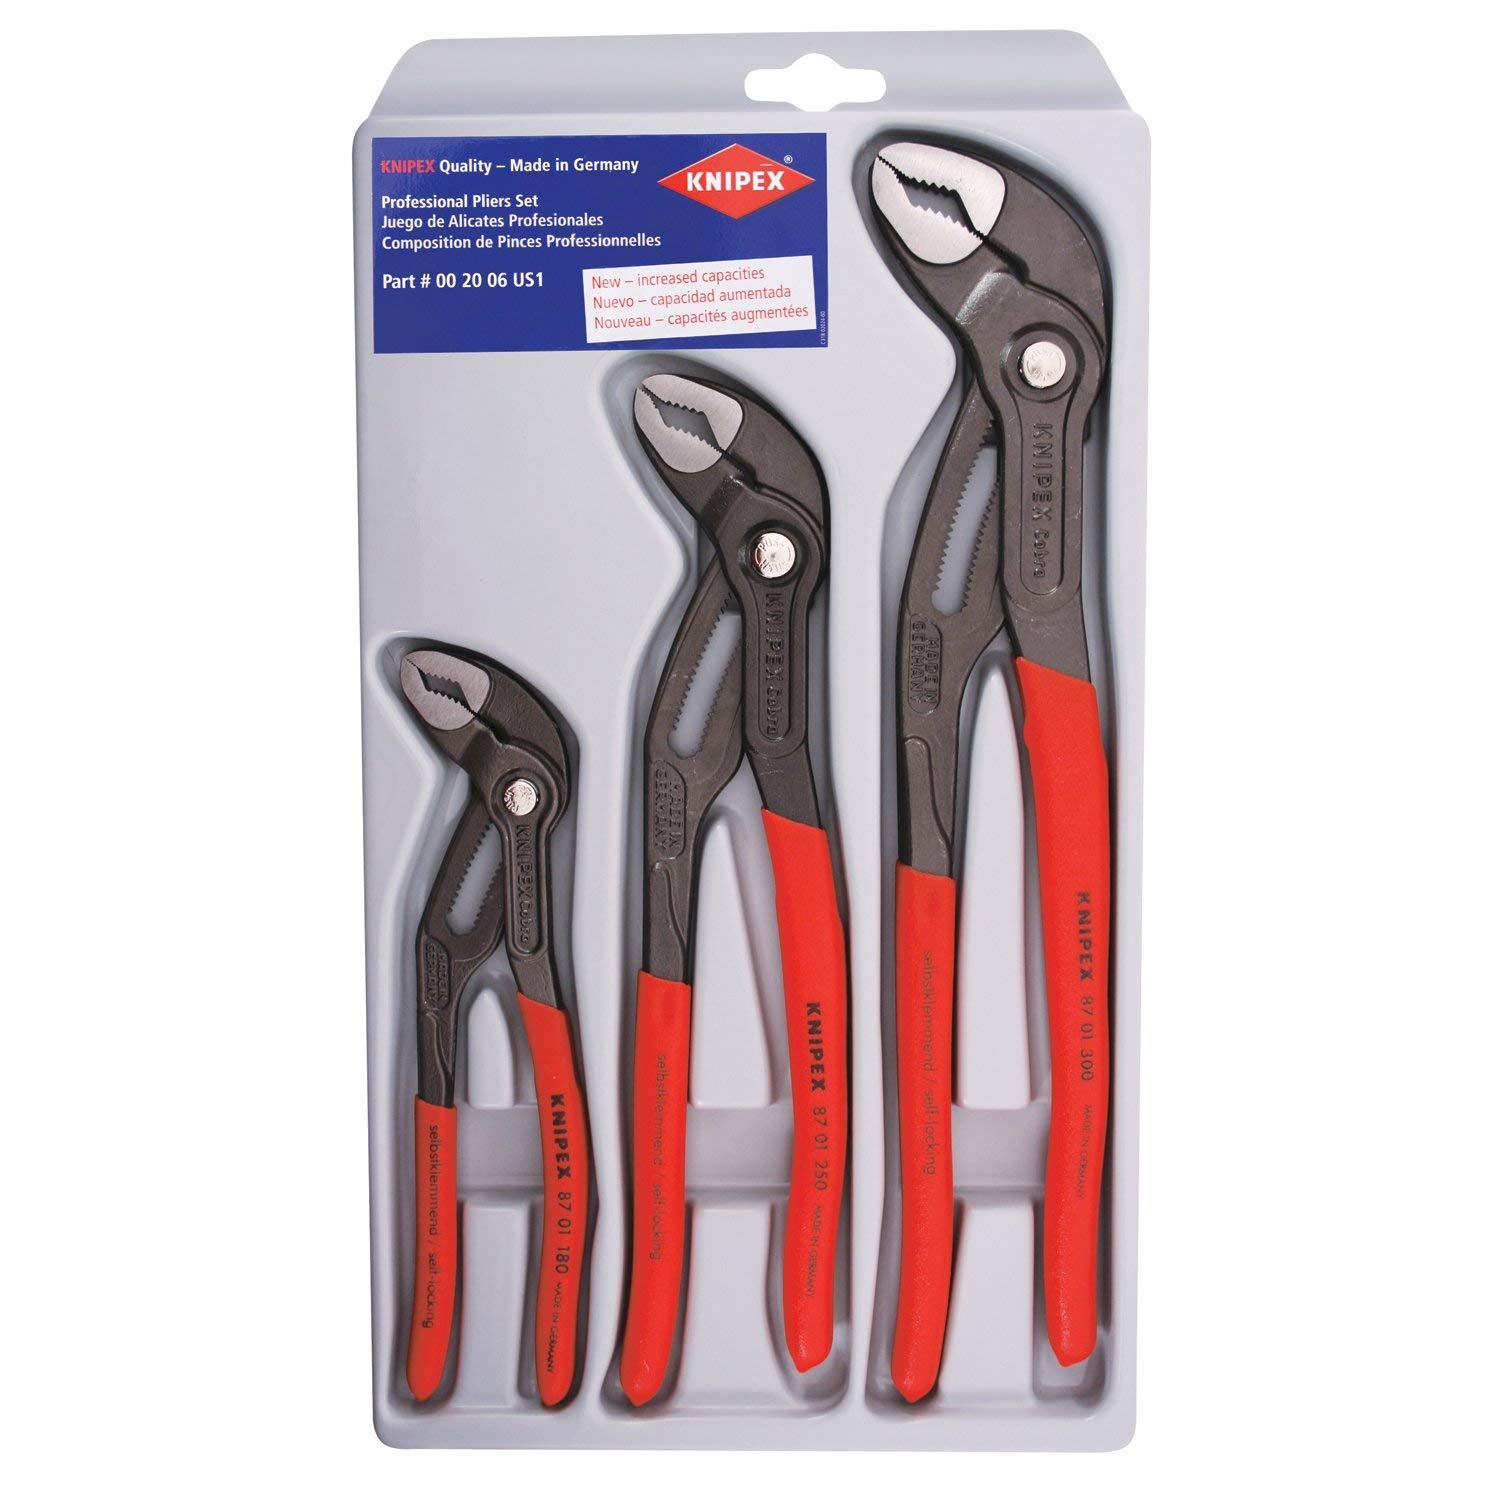 KNIPEX Tools 00 20 06 US1, Cobra Pliers 7, 10, and 12-Inch Set, 3-Piece (Pack of 4-)